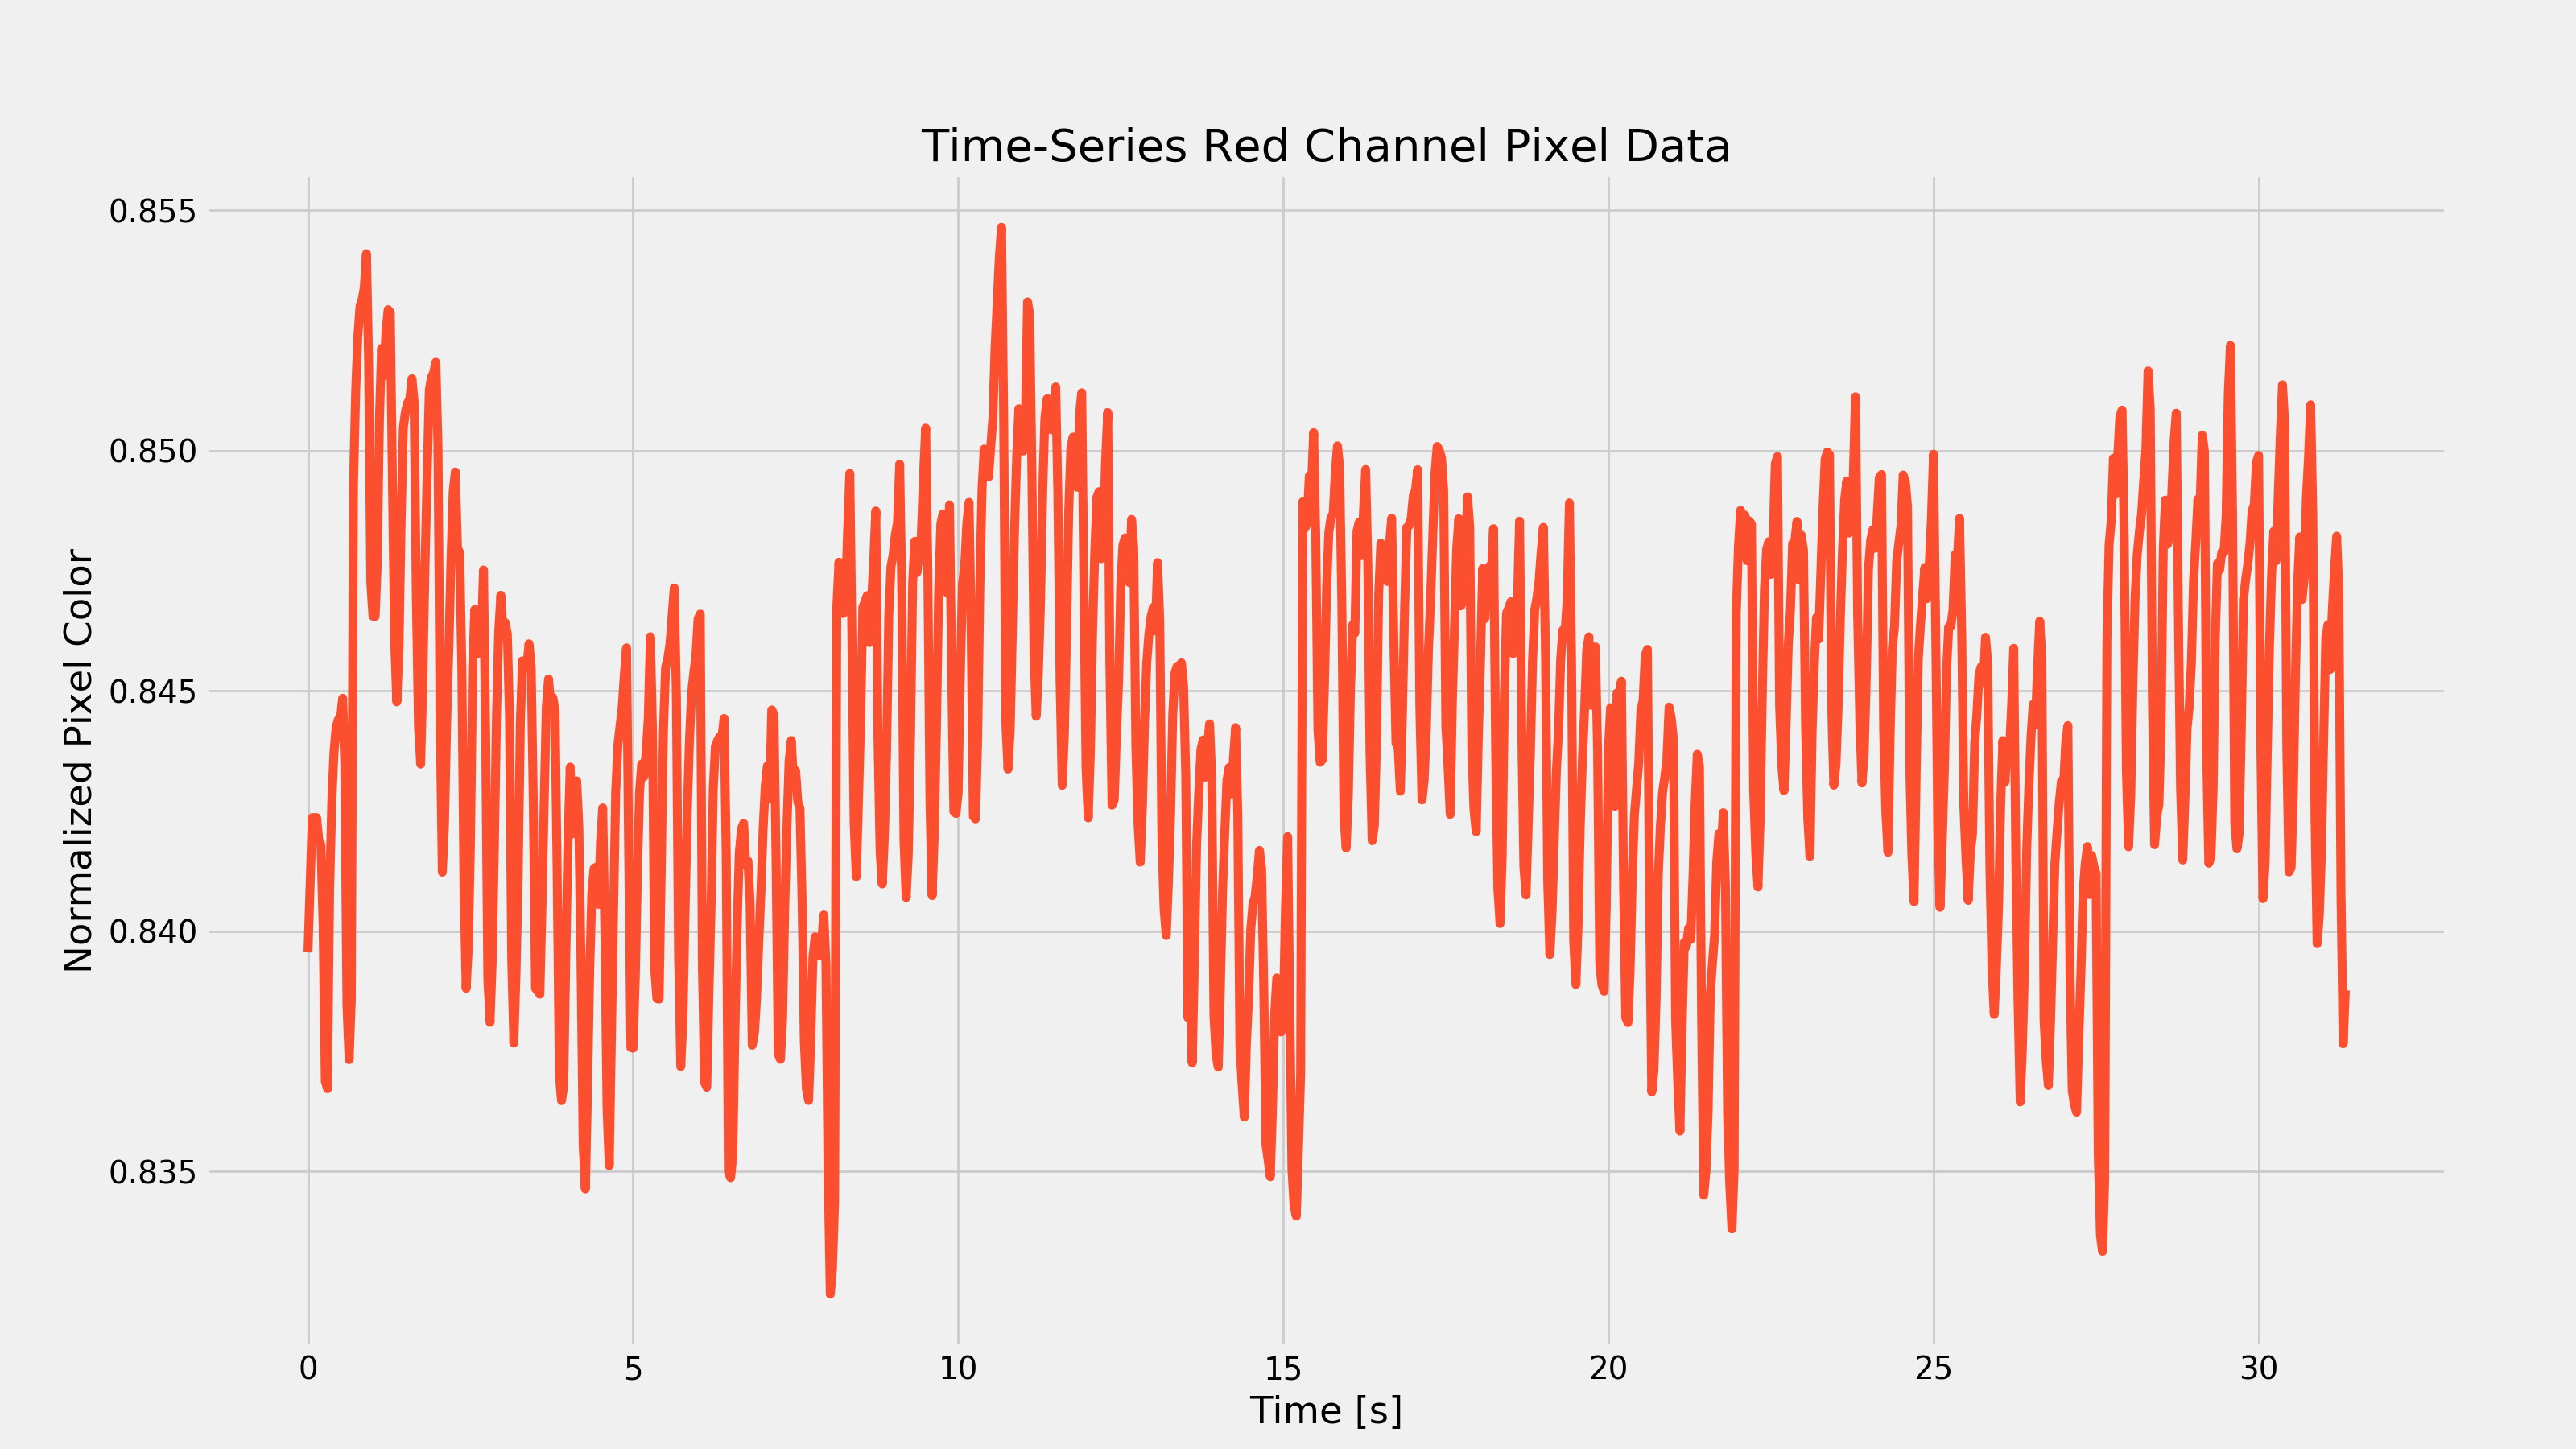 Active Heart Rate in Time